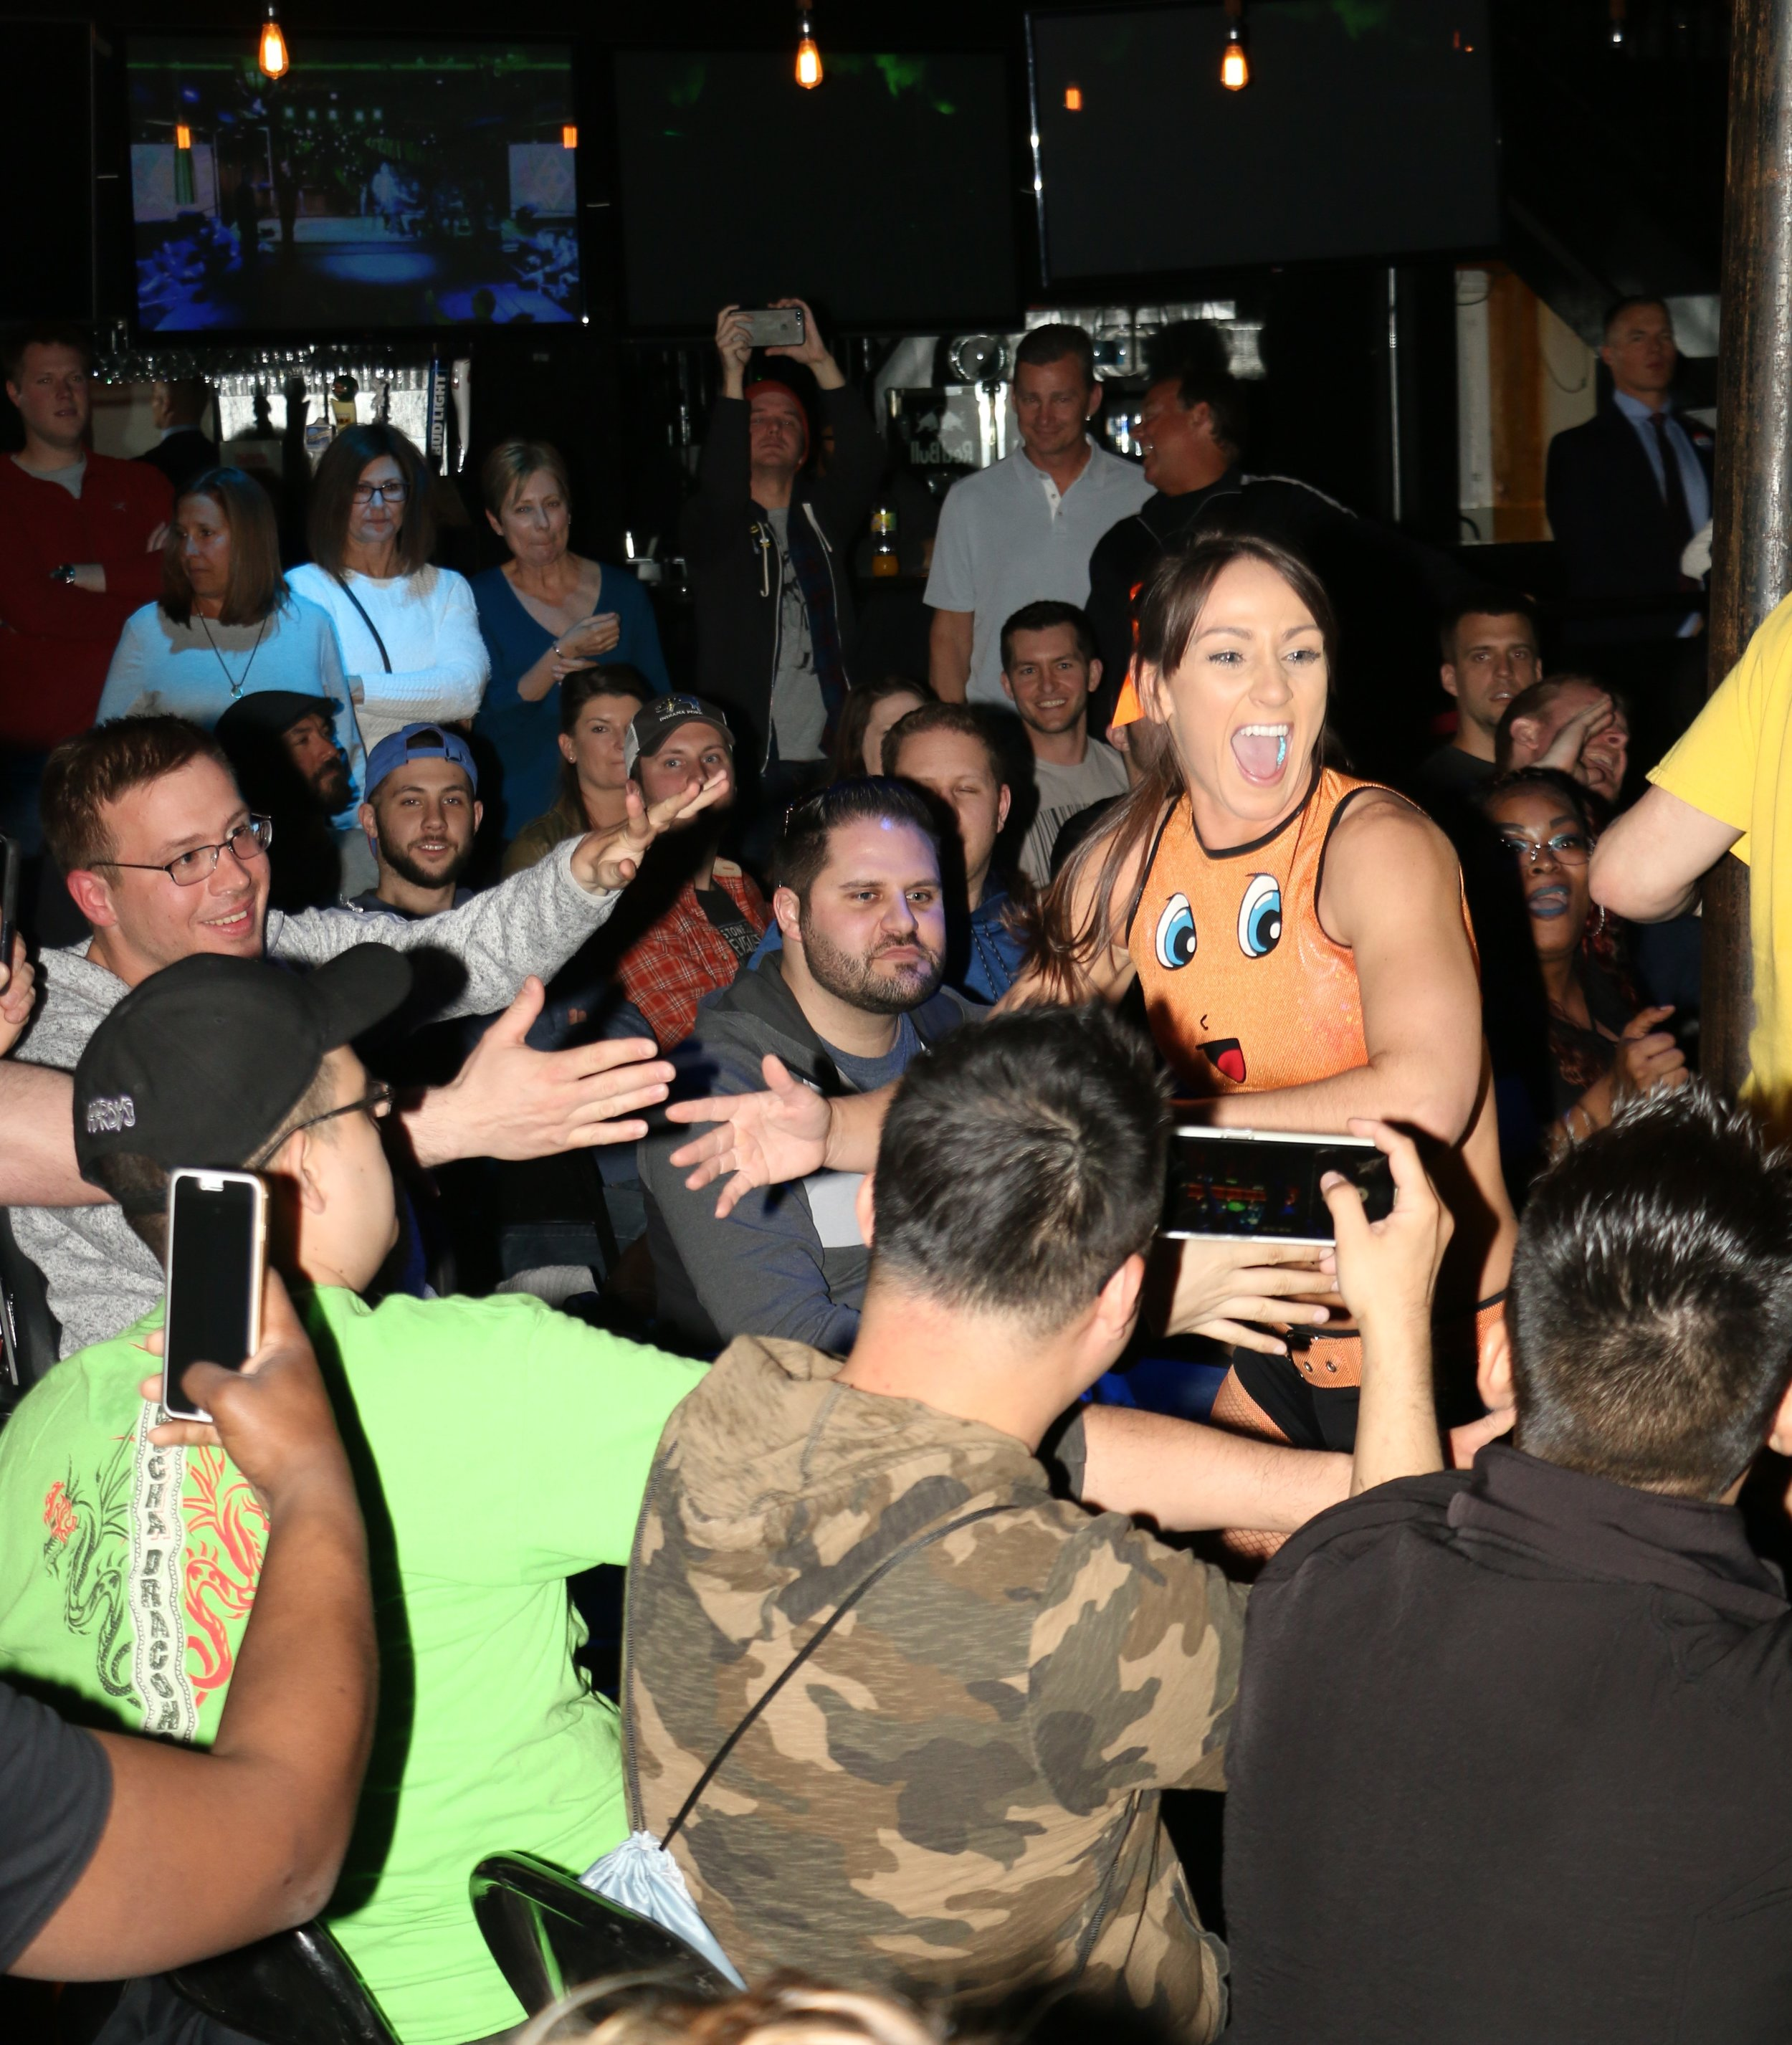 Kylie Rae greets the fans around ringside.